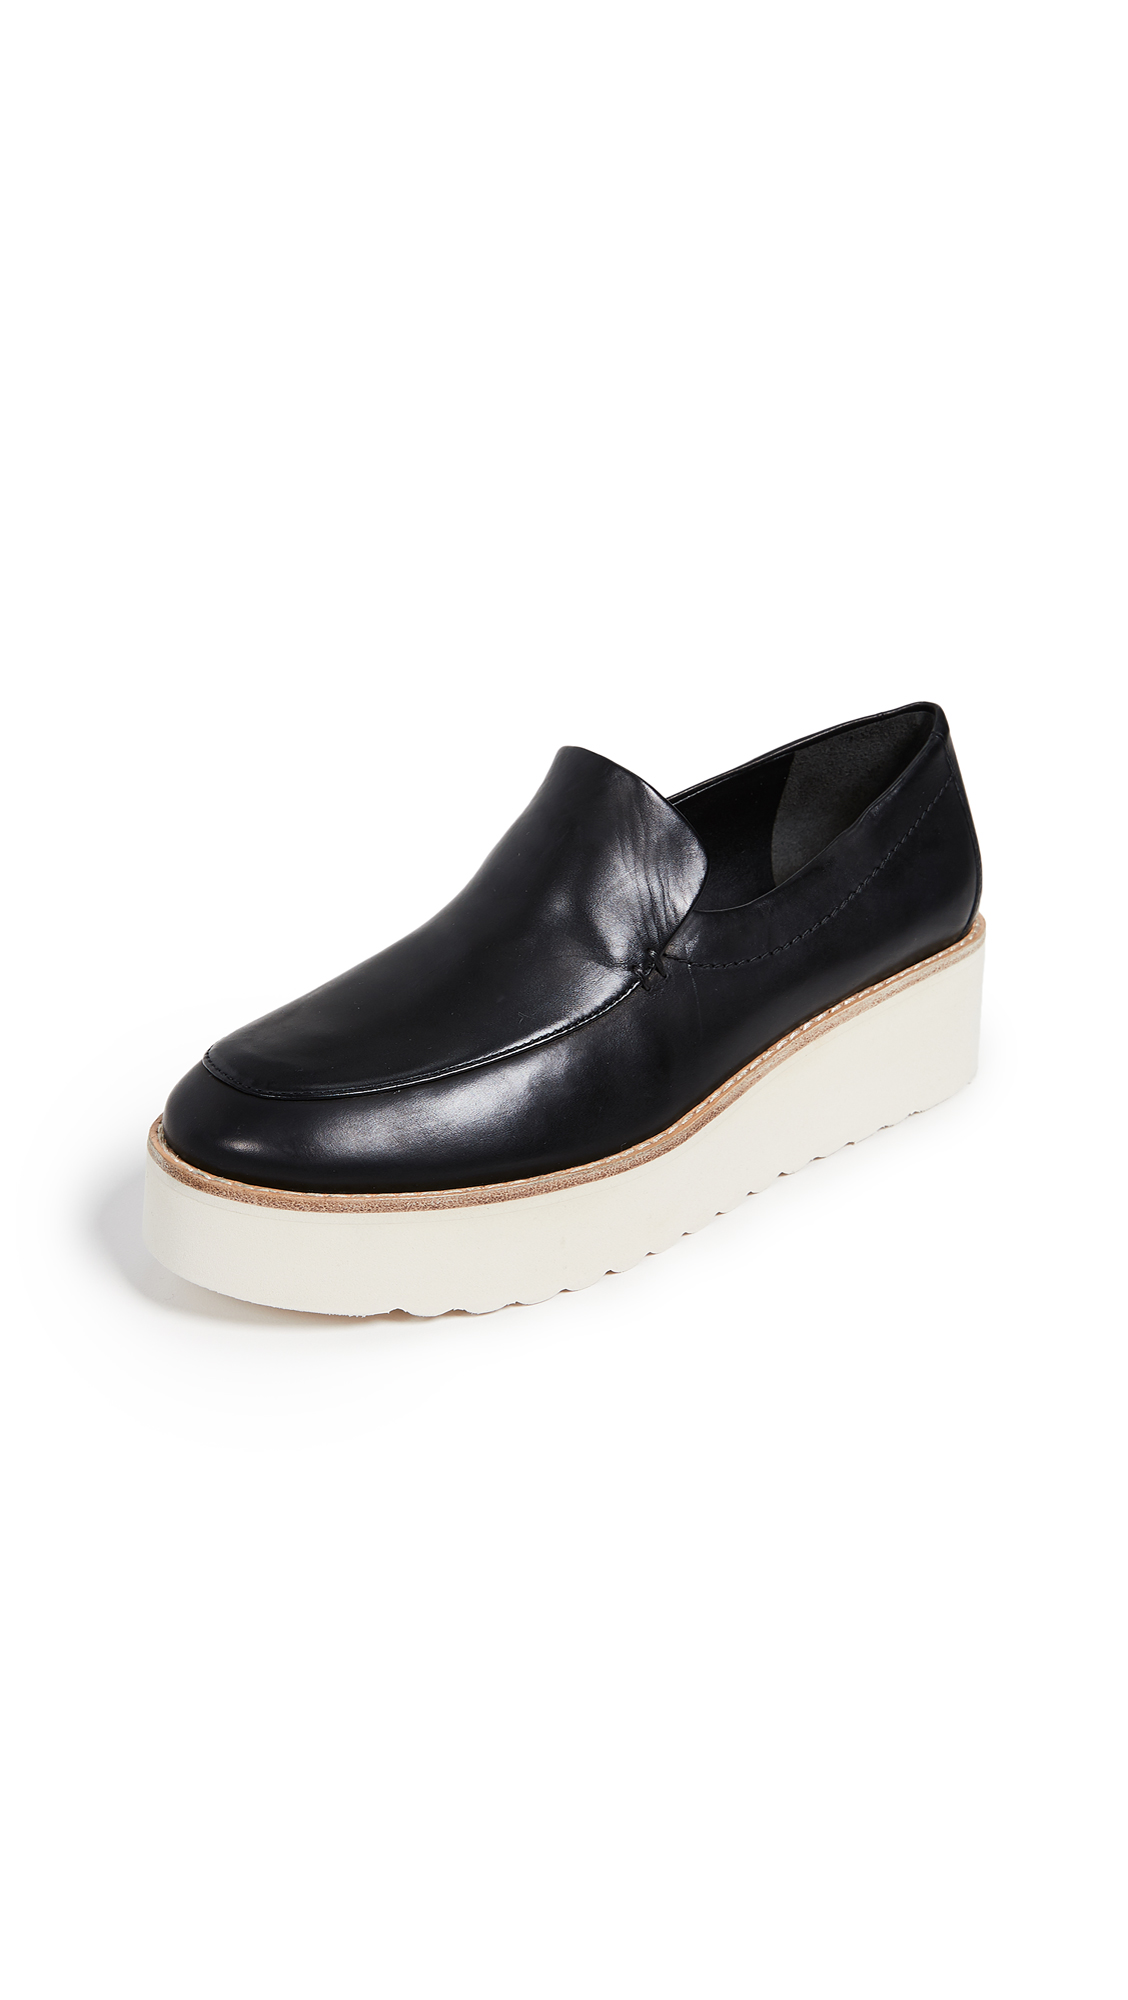 Vince Zeta Platform Loafers - Black